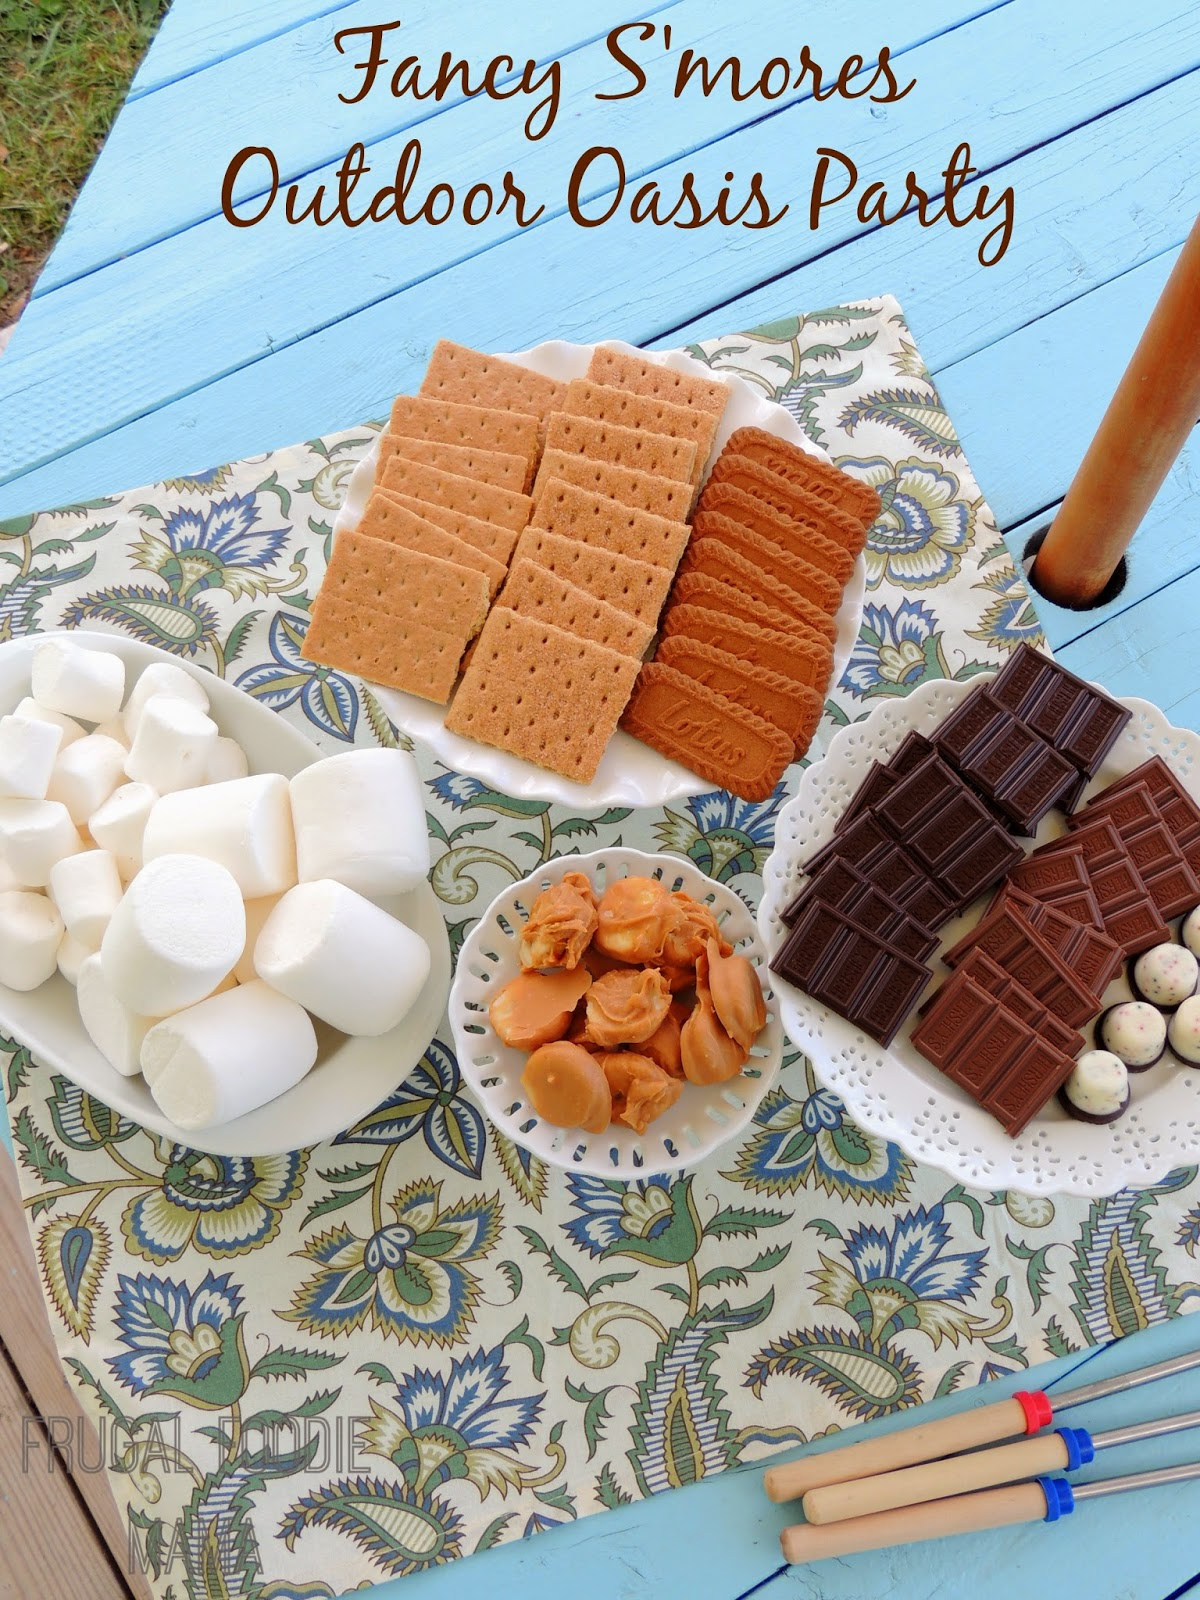 Forget plain ole s'mores this summer! Really wow your backyard guests by throwing a Fancy S'mores Outdoor Oasis Party.